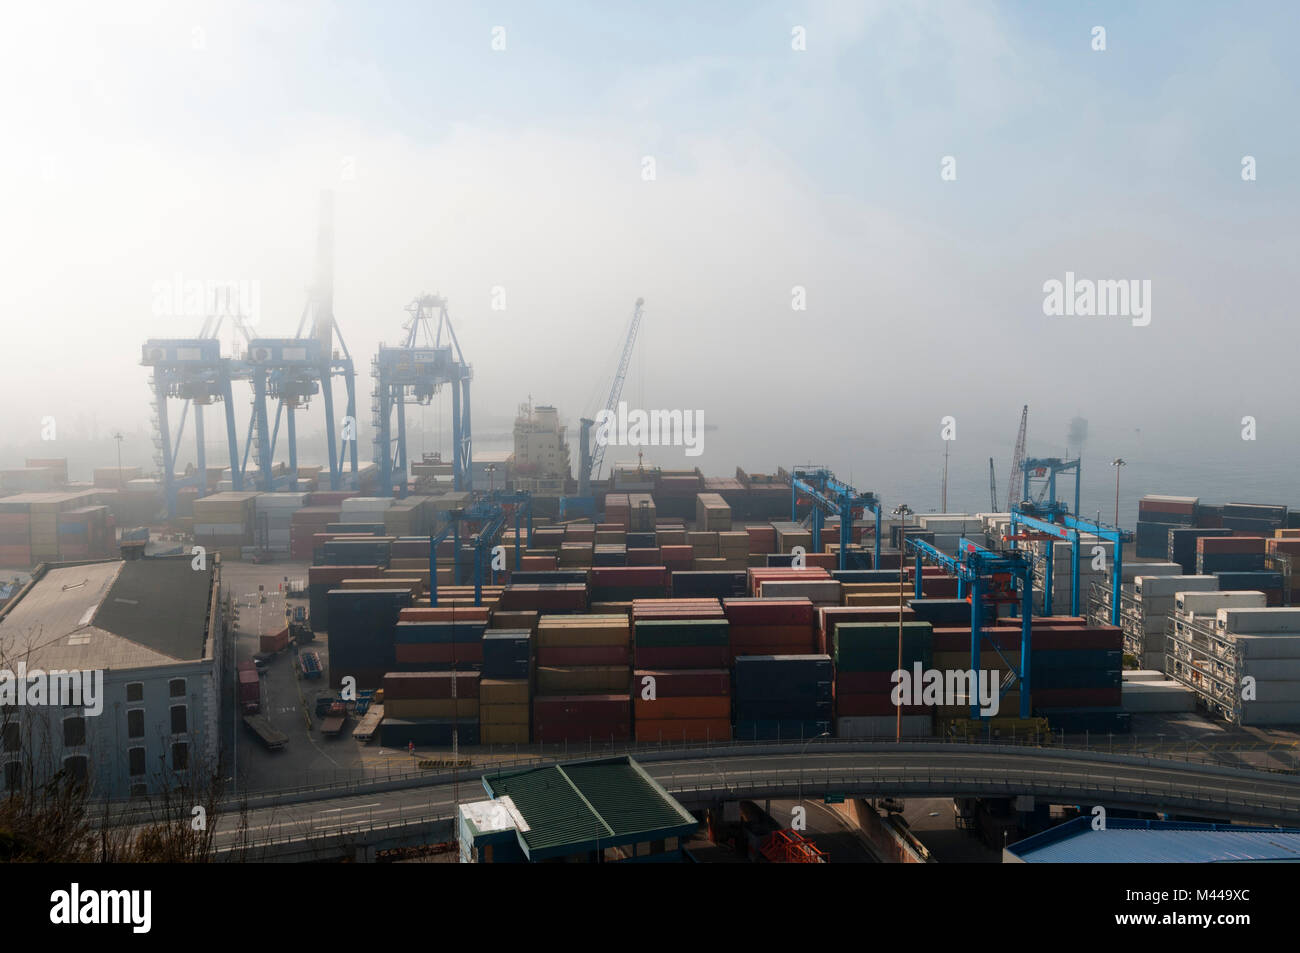 Shipping containers and harbour cranes in mist, Valparaiso, Chile Stock Photo